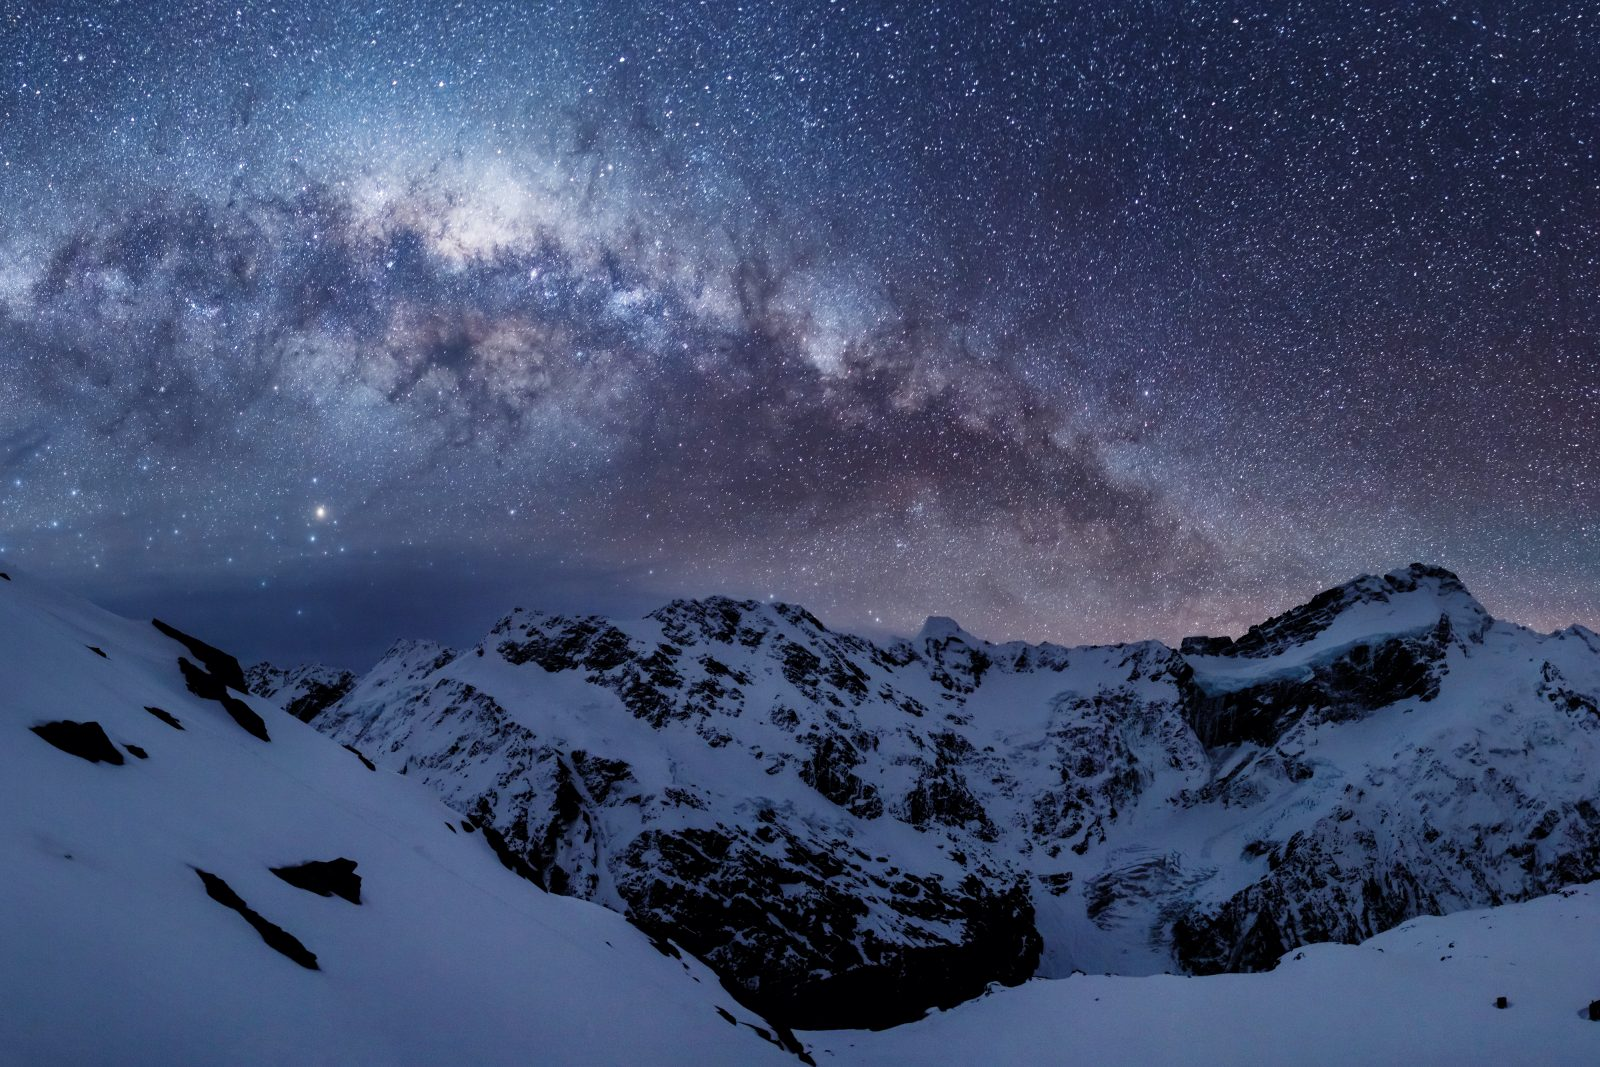 The Sierra Range, a rampart of the Southern Alps, bathes in starlight. This massive wall of rock is largely responsible for the extraordinarily clear skies over Canterbury. The westerly wind cools as it rises over the snowy turrets, condensing the moisture that falls as snow or rain, predominantly west of the range, leaving the leeward side dry, clear and low in humidity—vital ingredients for stargazing.